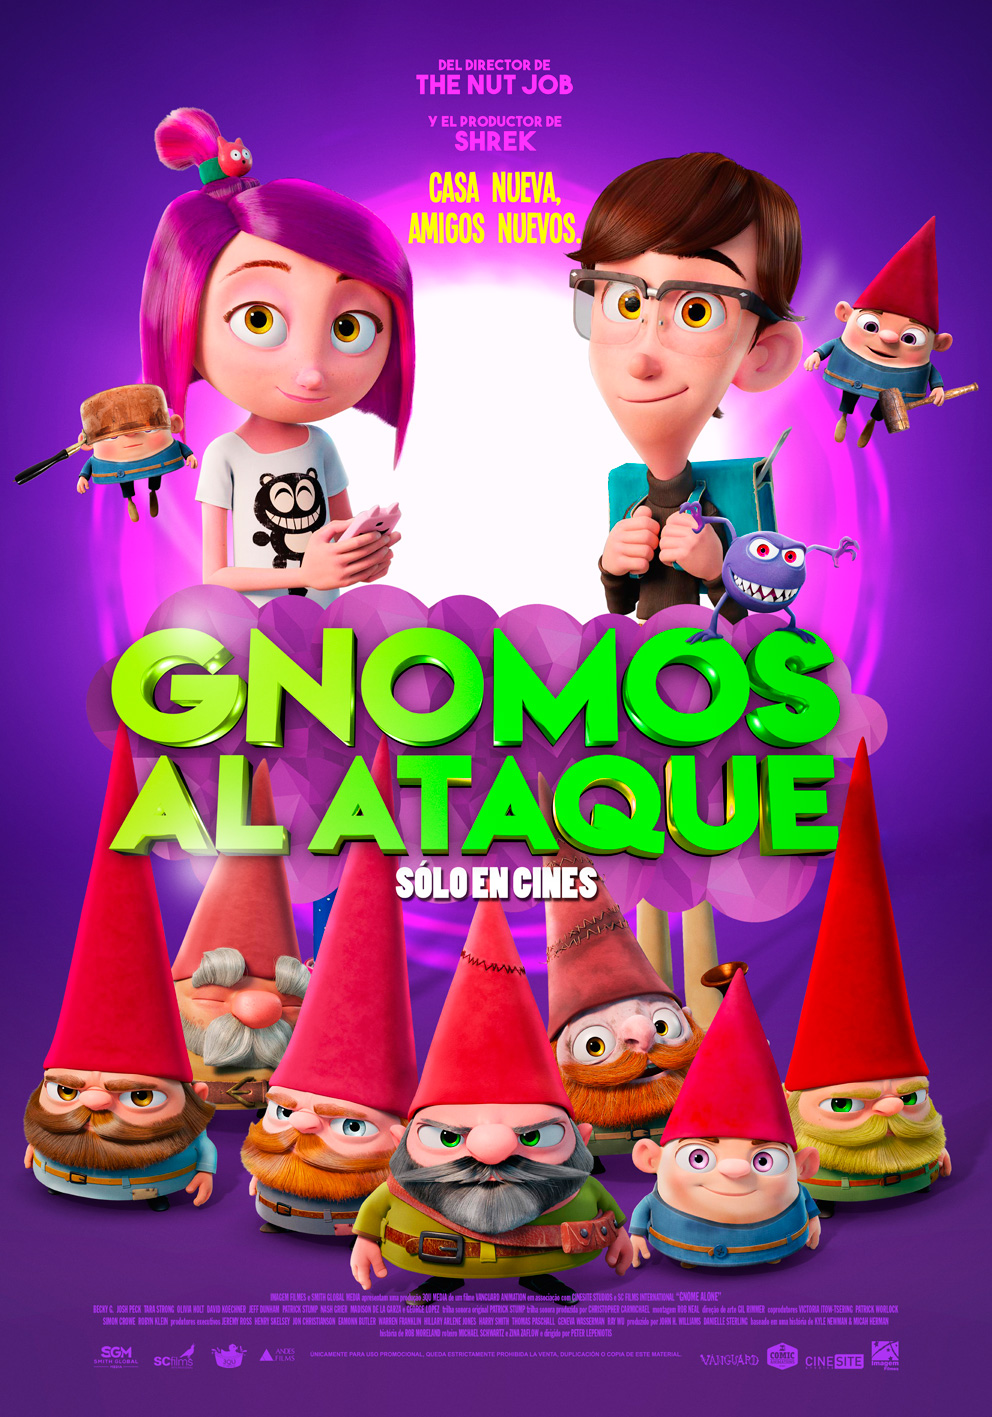 https://www.andesfilms.com.pe/gnomos-al-ataque/